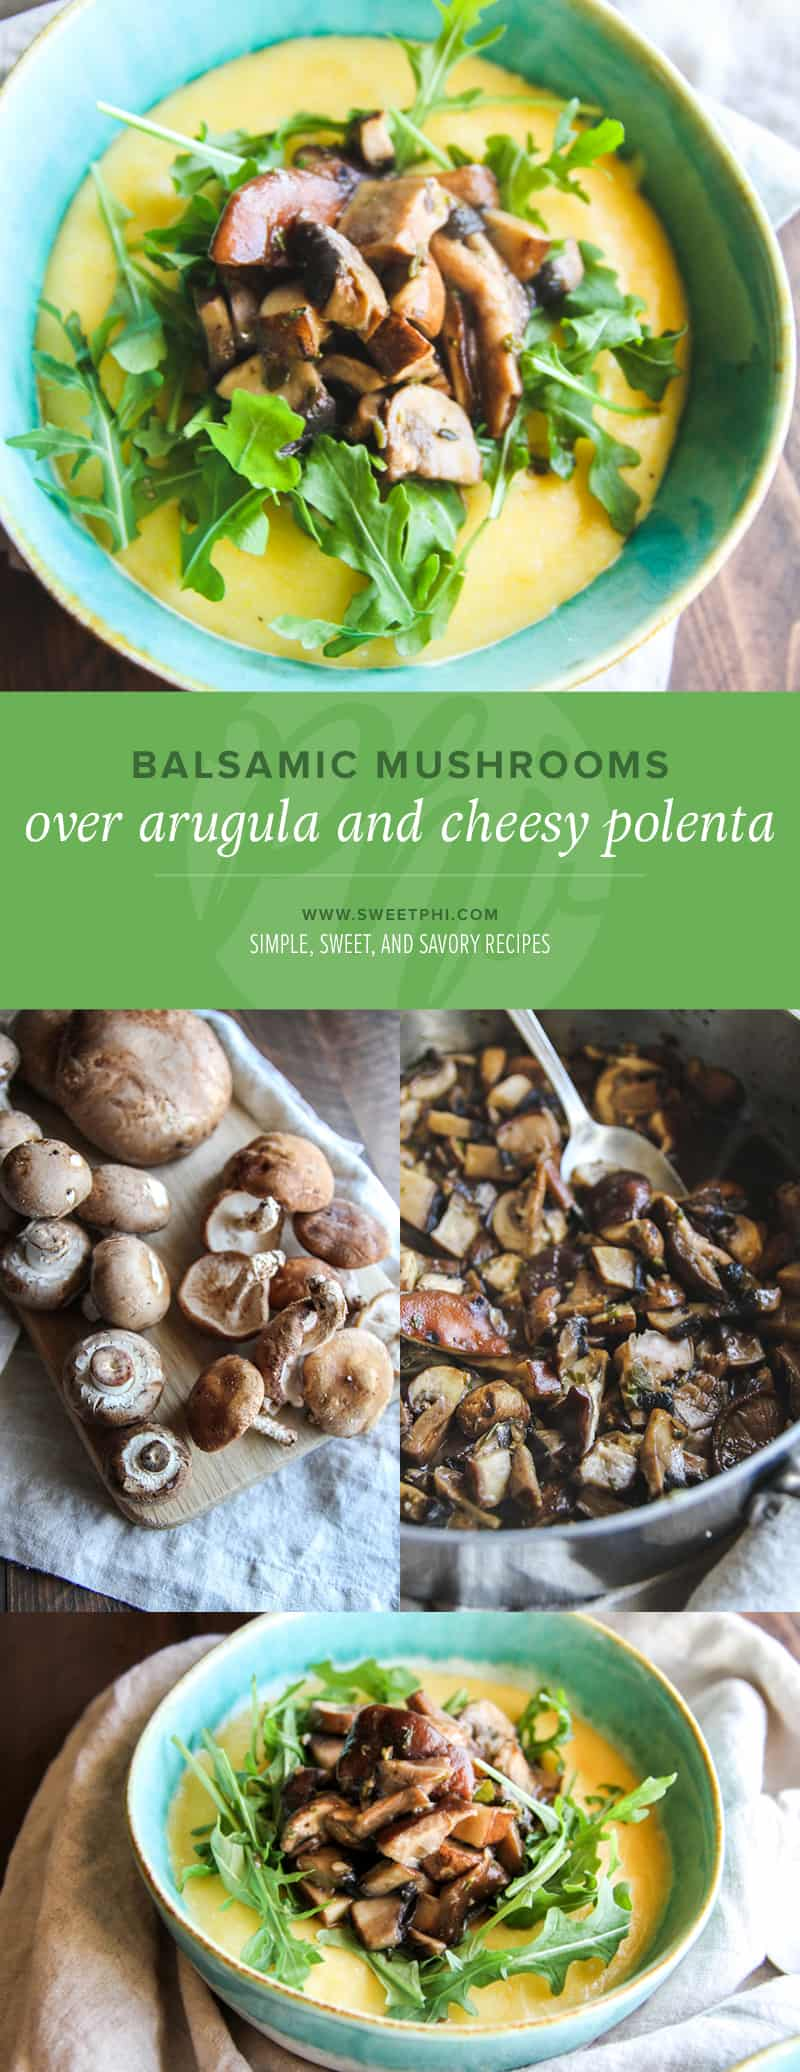 The best balsamic mushrooms over arugula and cheesy polenta - a great meatless Monday gluten free dinner